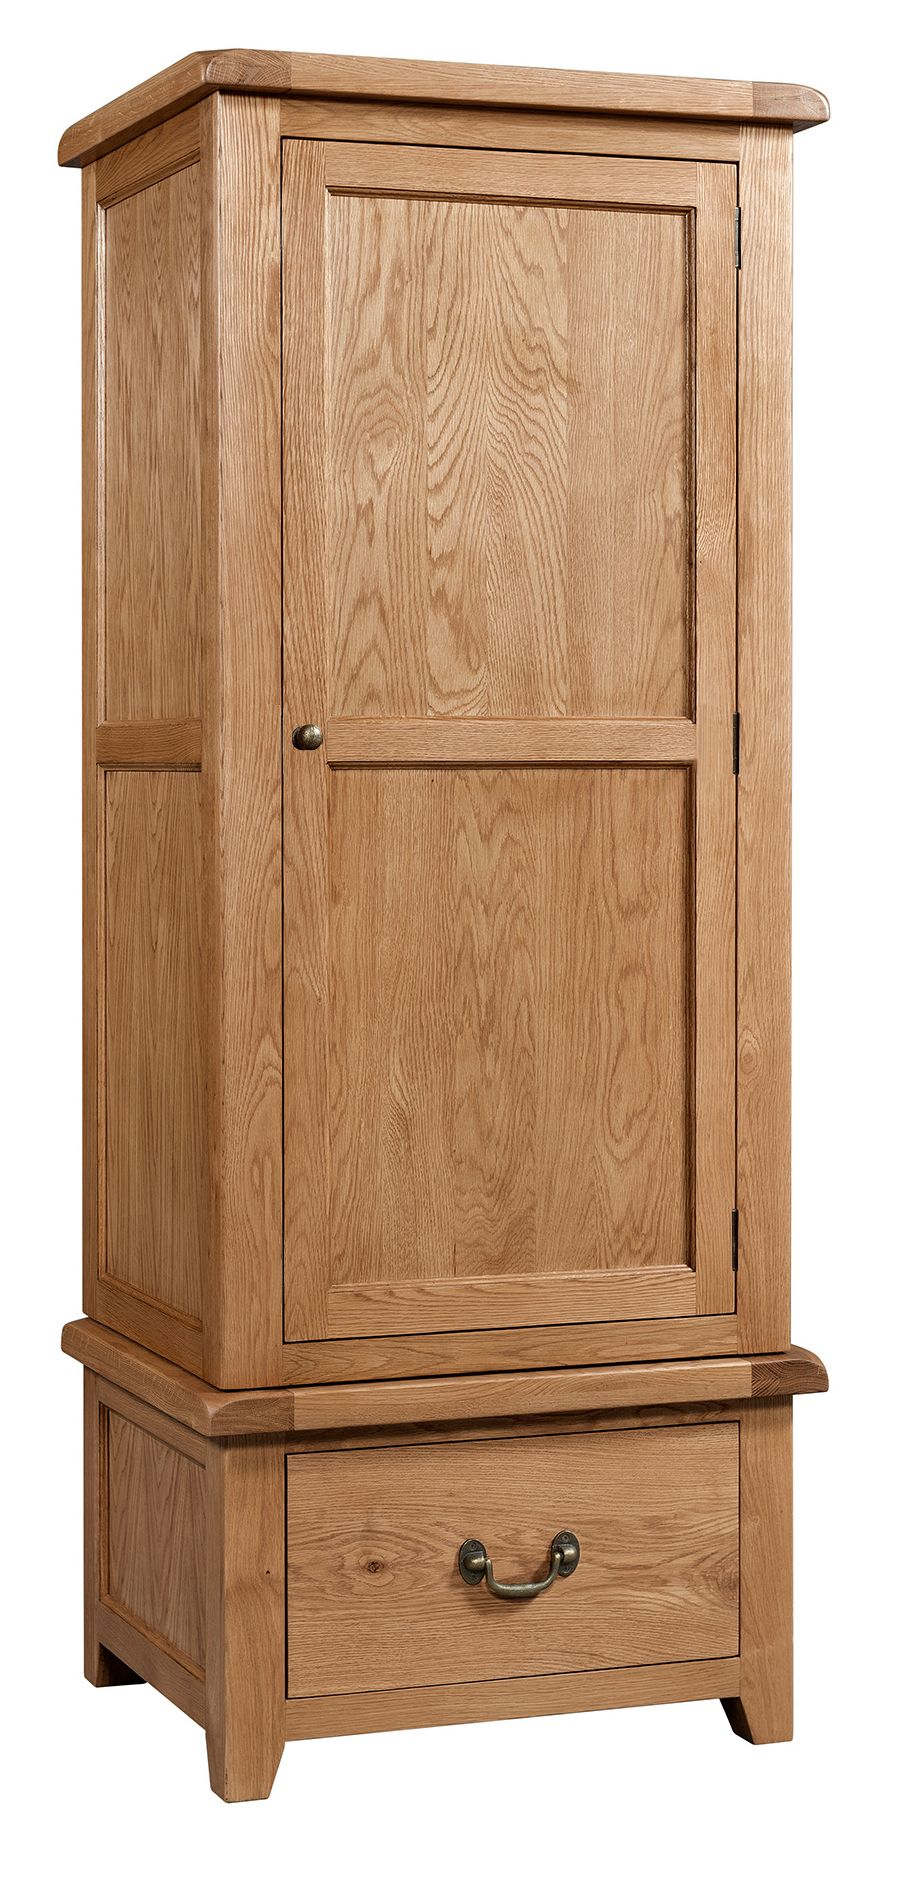 SUMMERFIELD Single Wardrobe with 1 Drawer